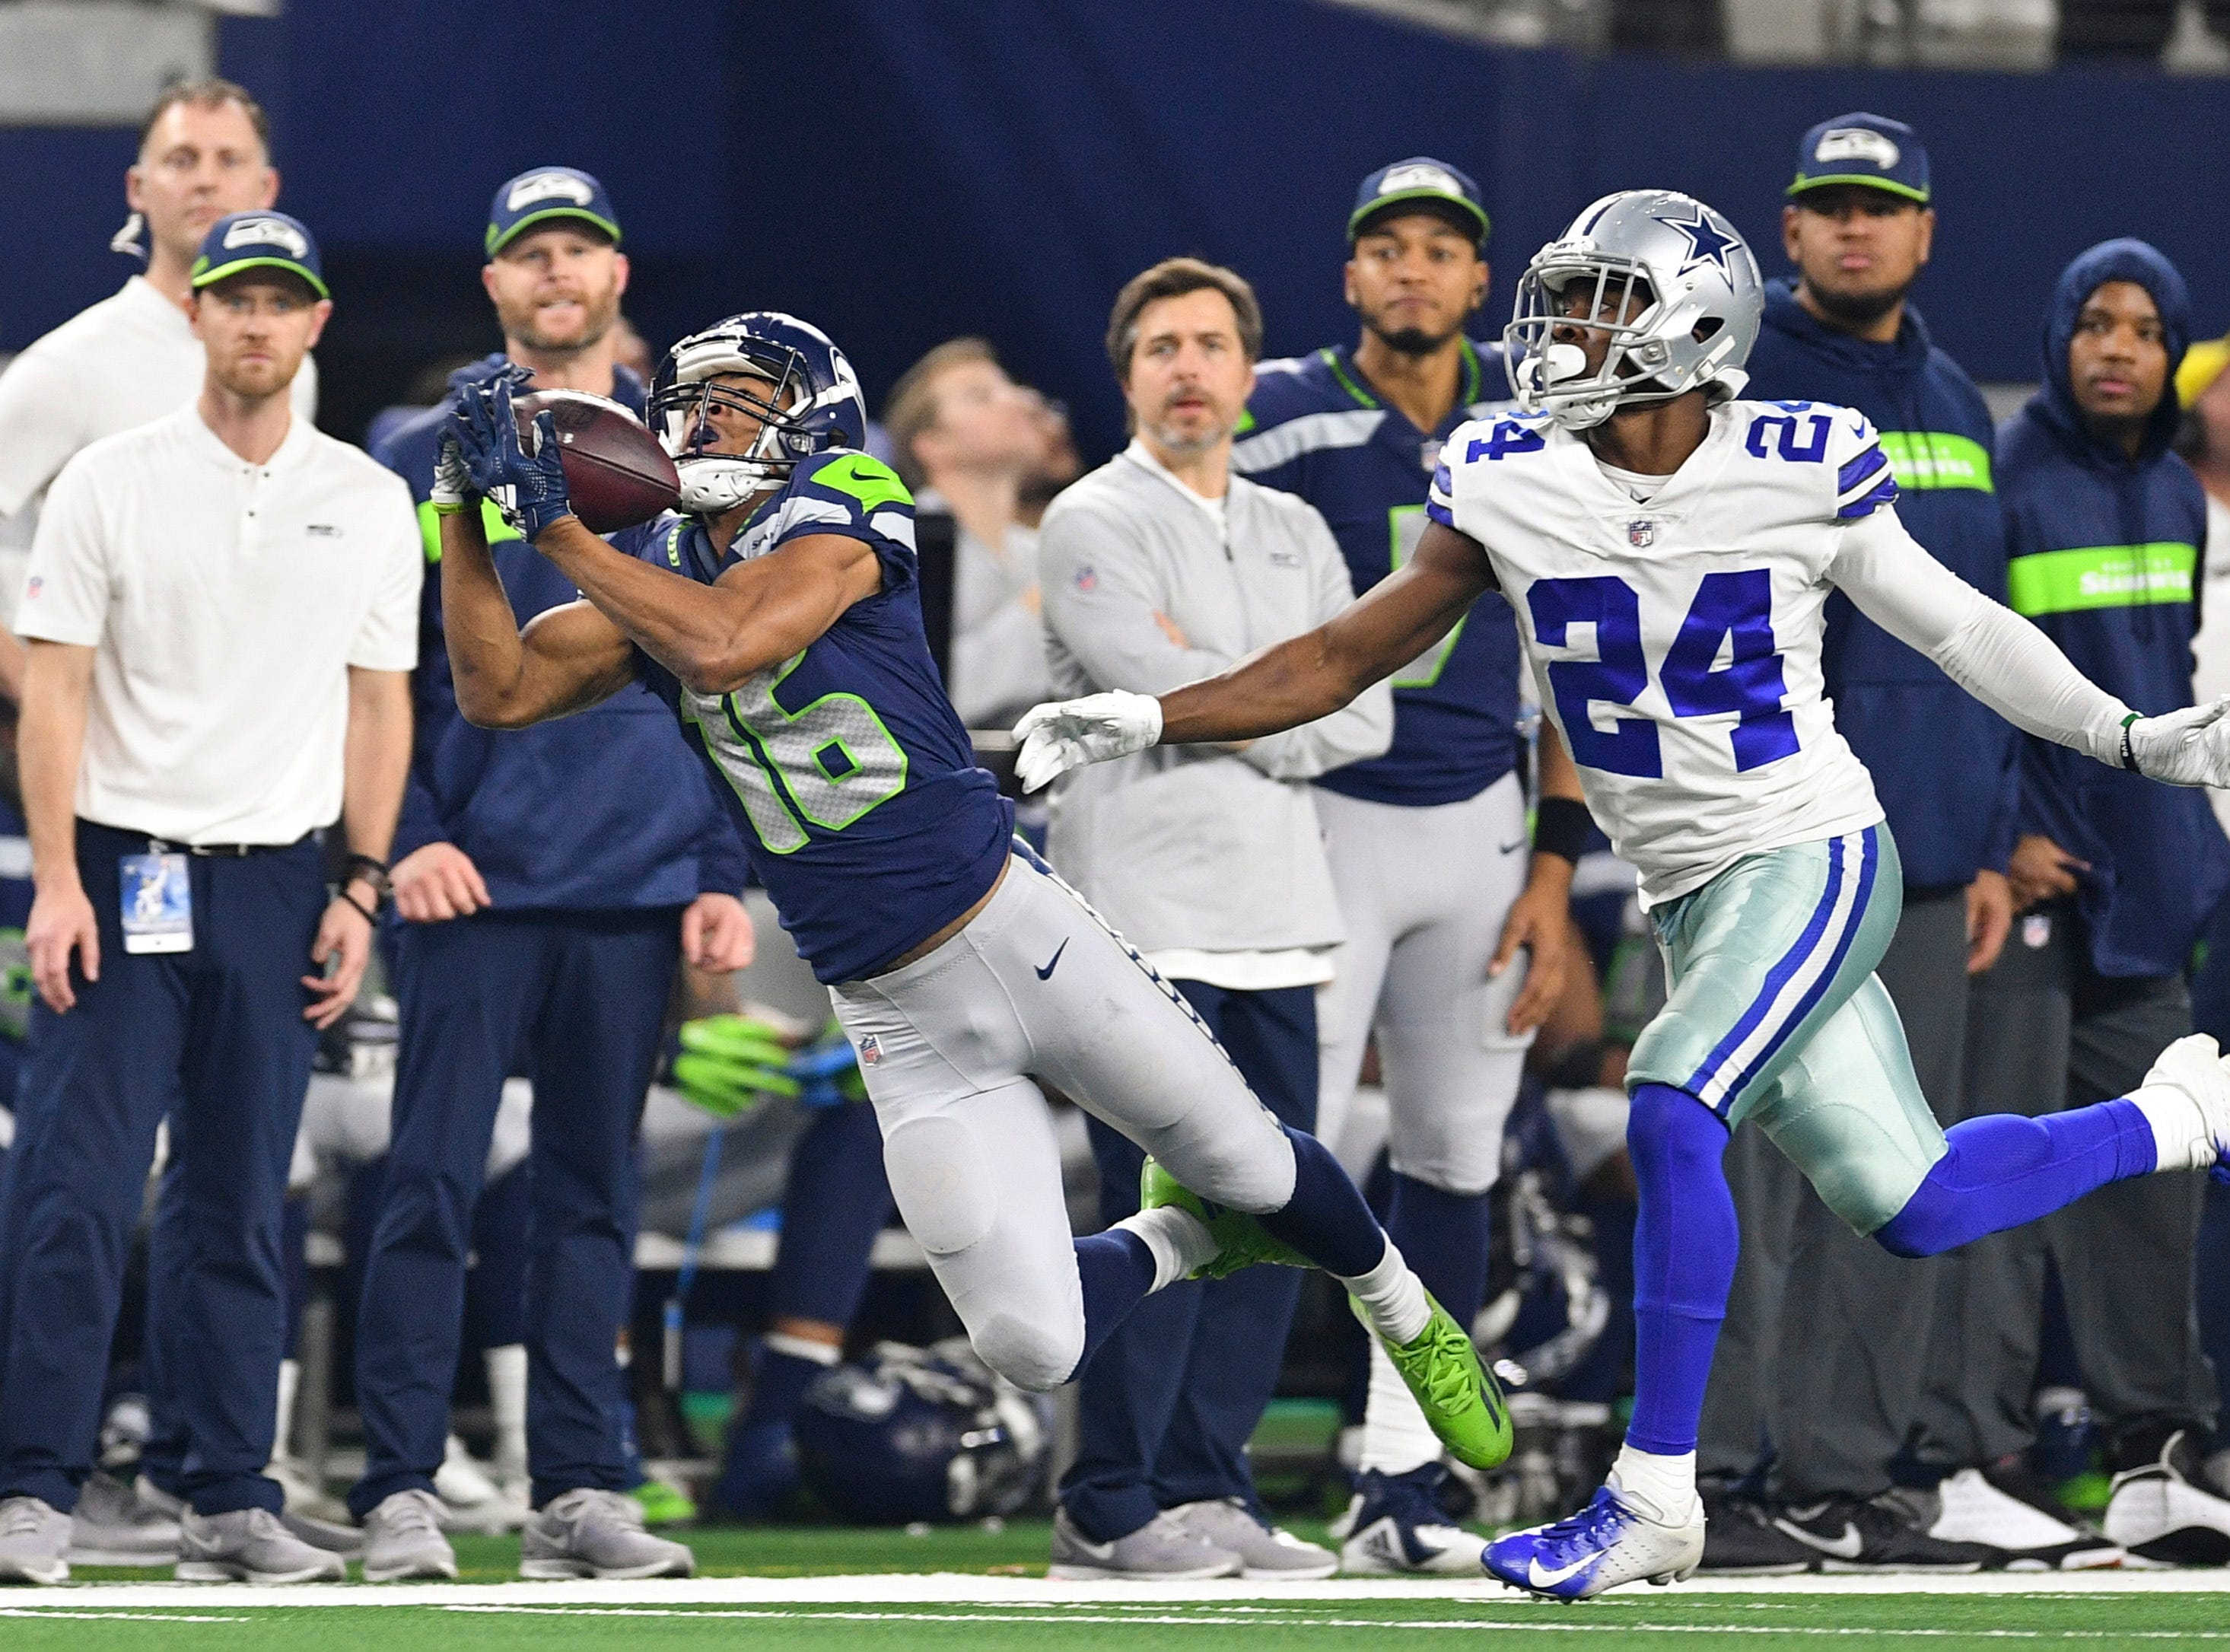 Seattle Seahawks wide receiver Tyler Lockett (16) catches a pass against the Dallas Cowboys in the second quarter at AT&T Stadium.